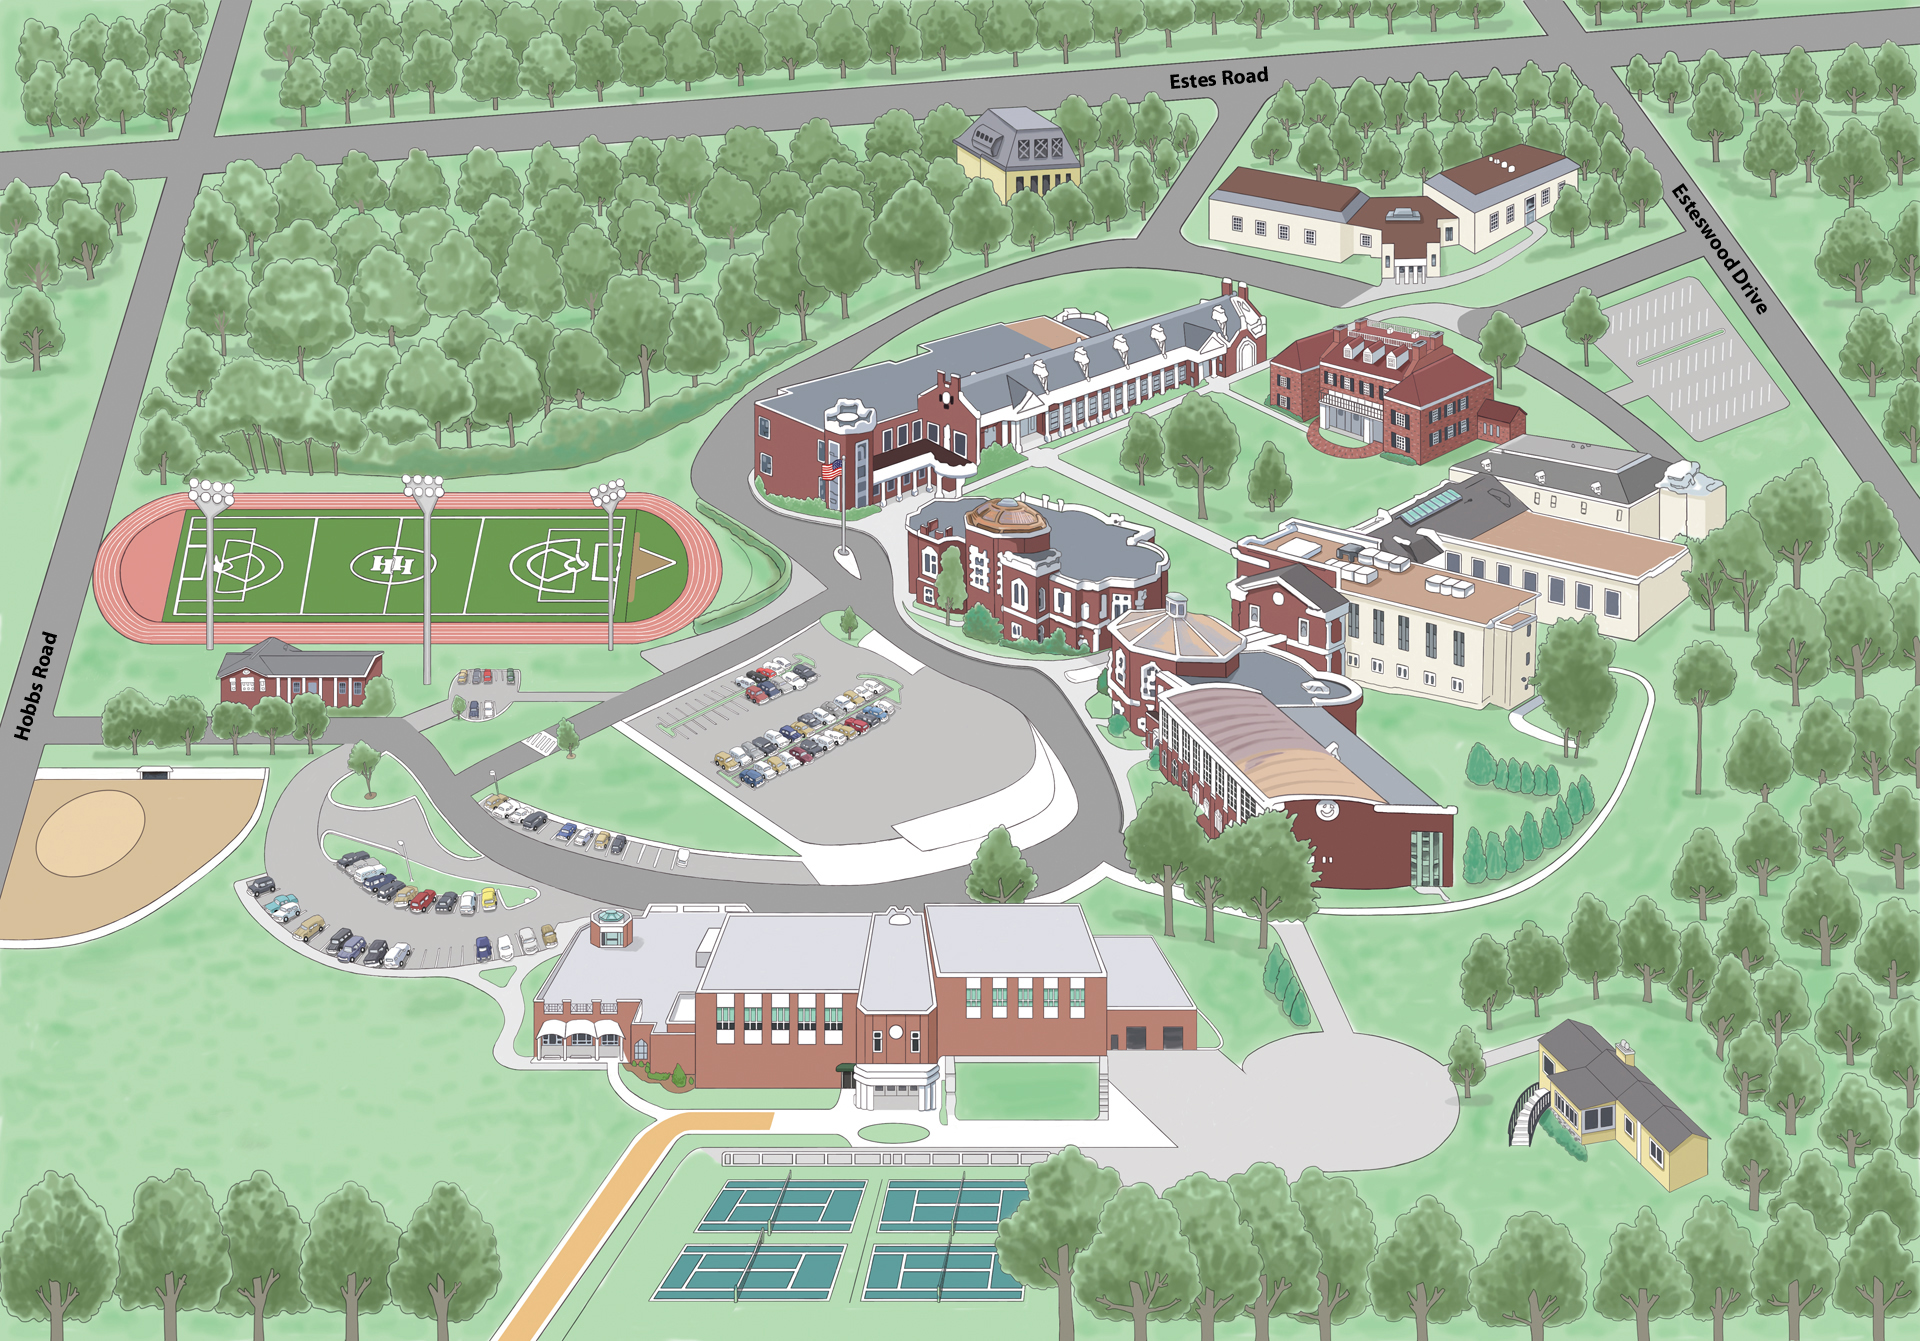 School Campus Map.Campus Map Harpeth Hall School